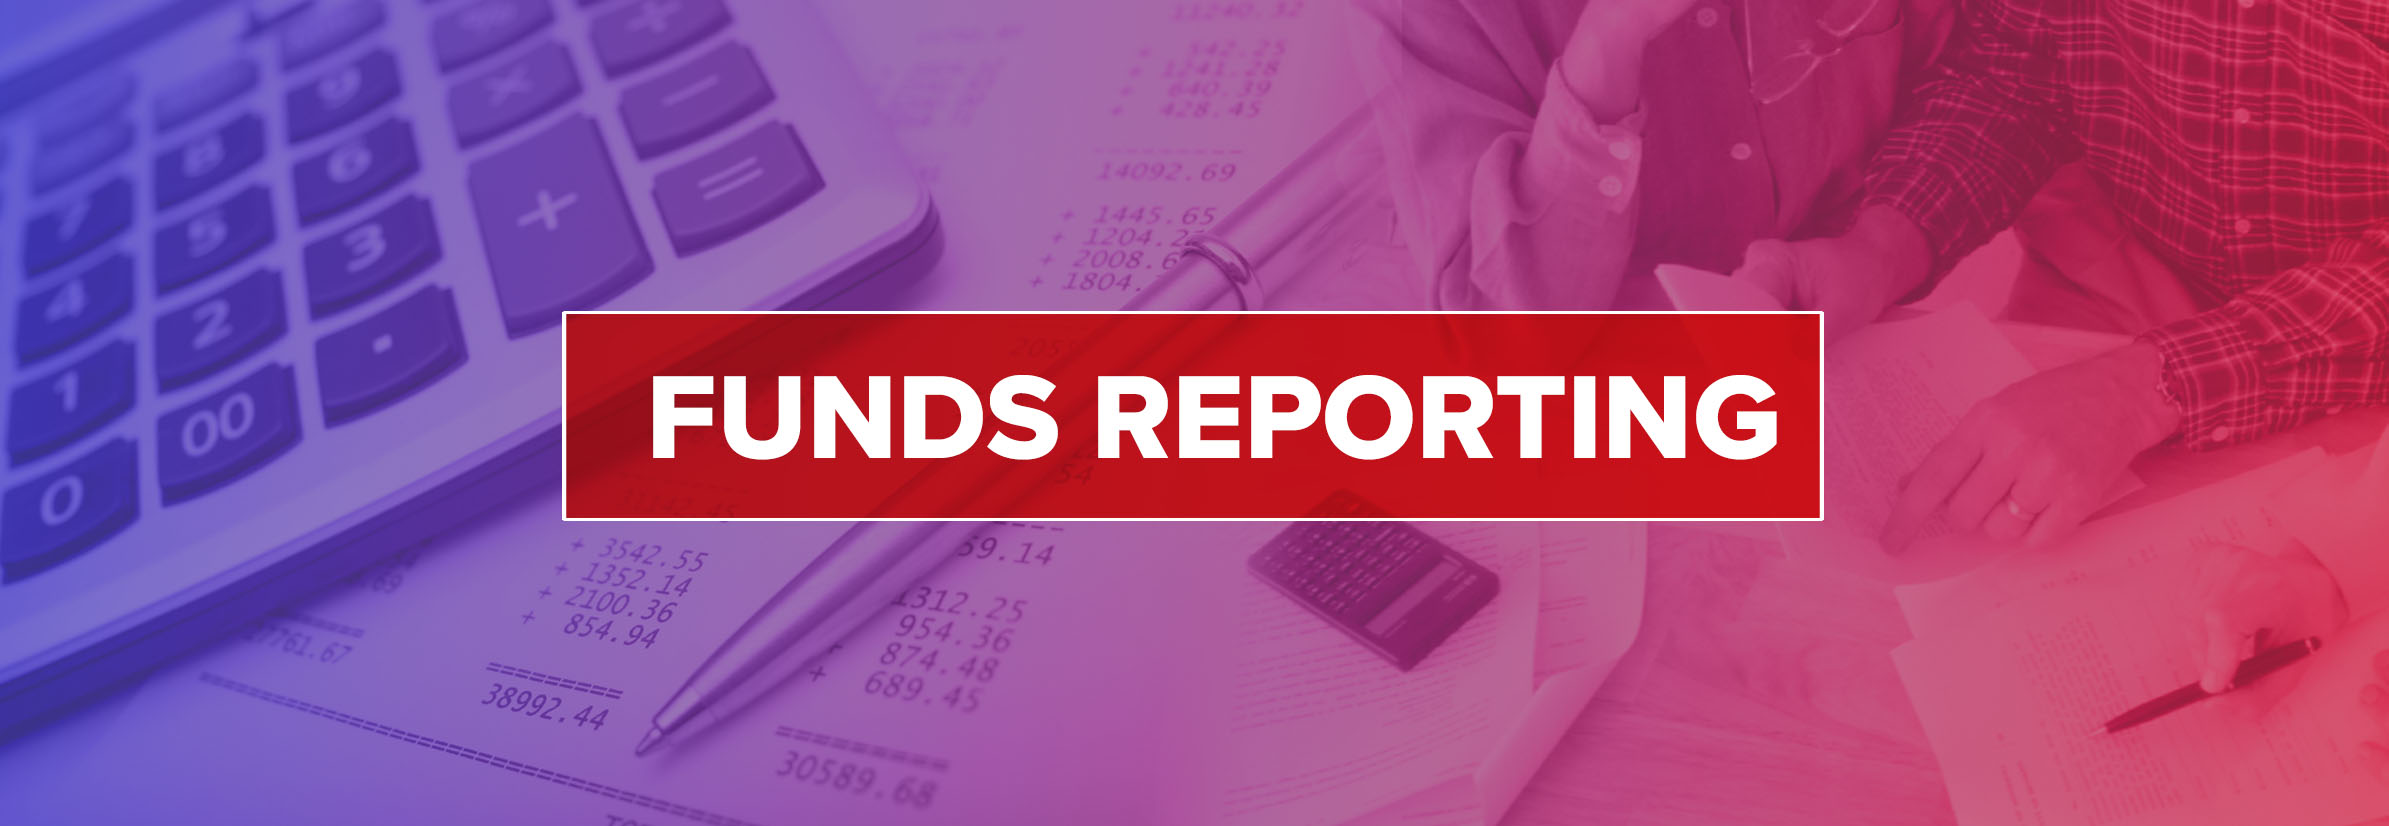 funds-reporting2